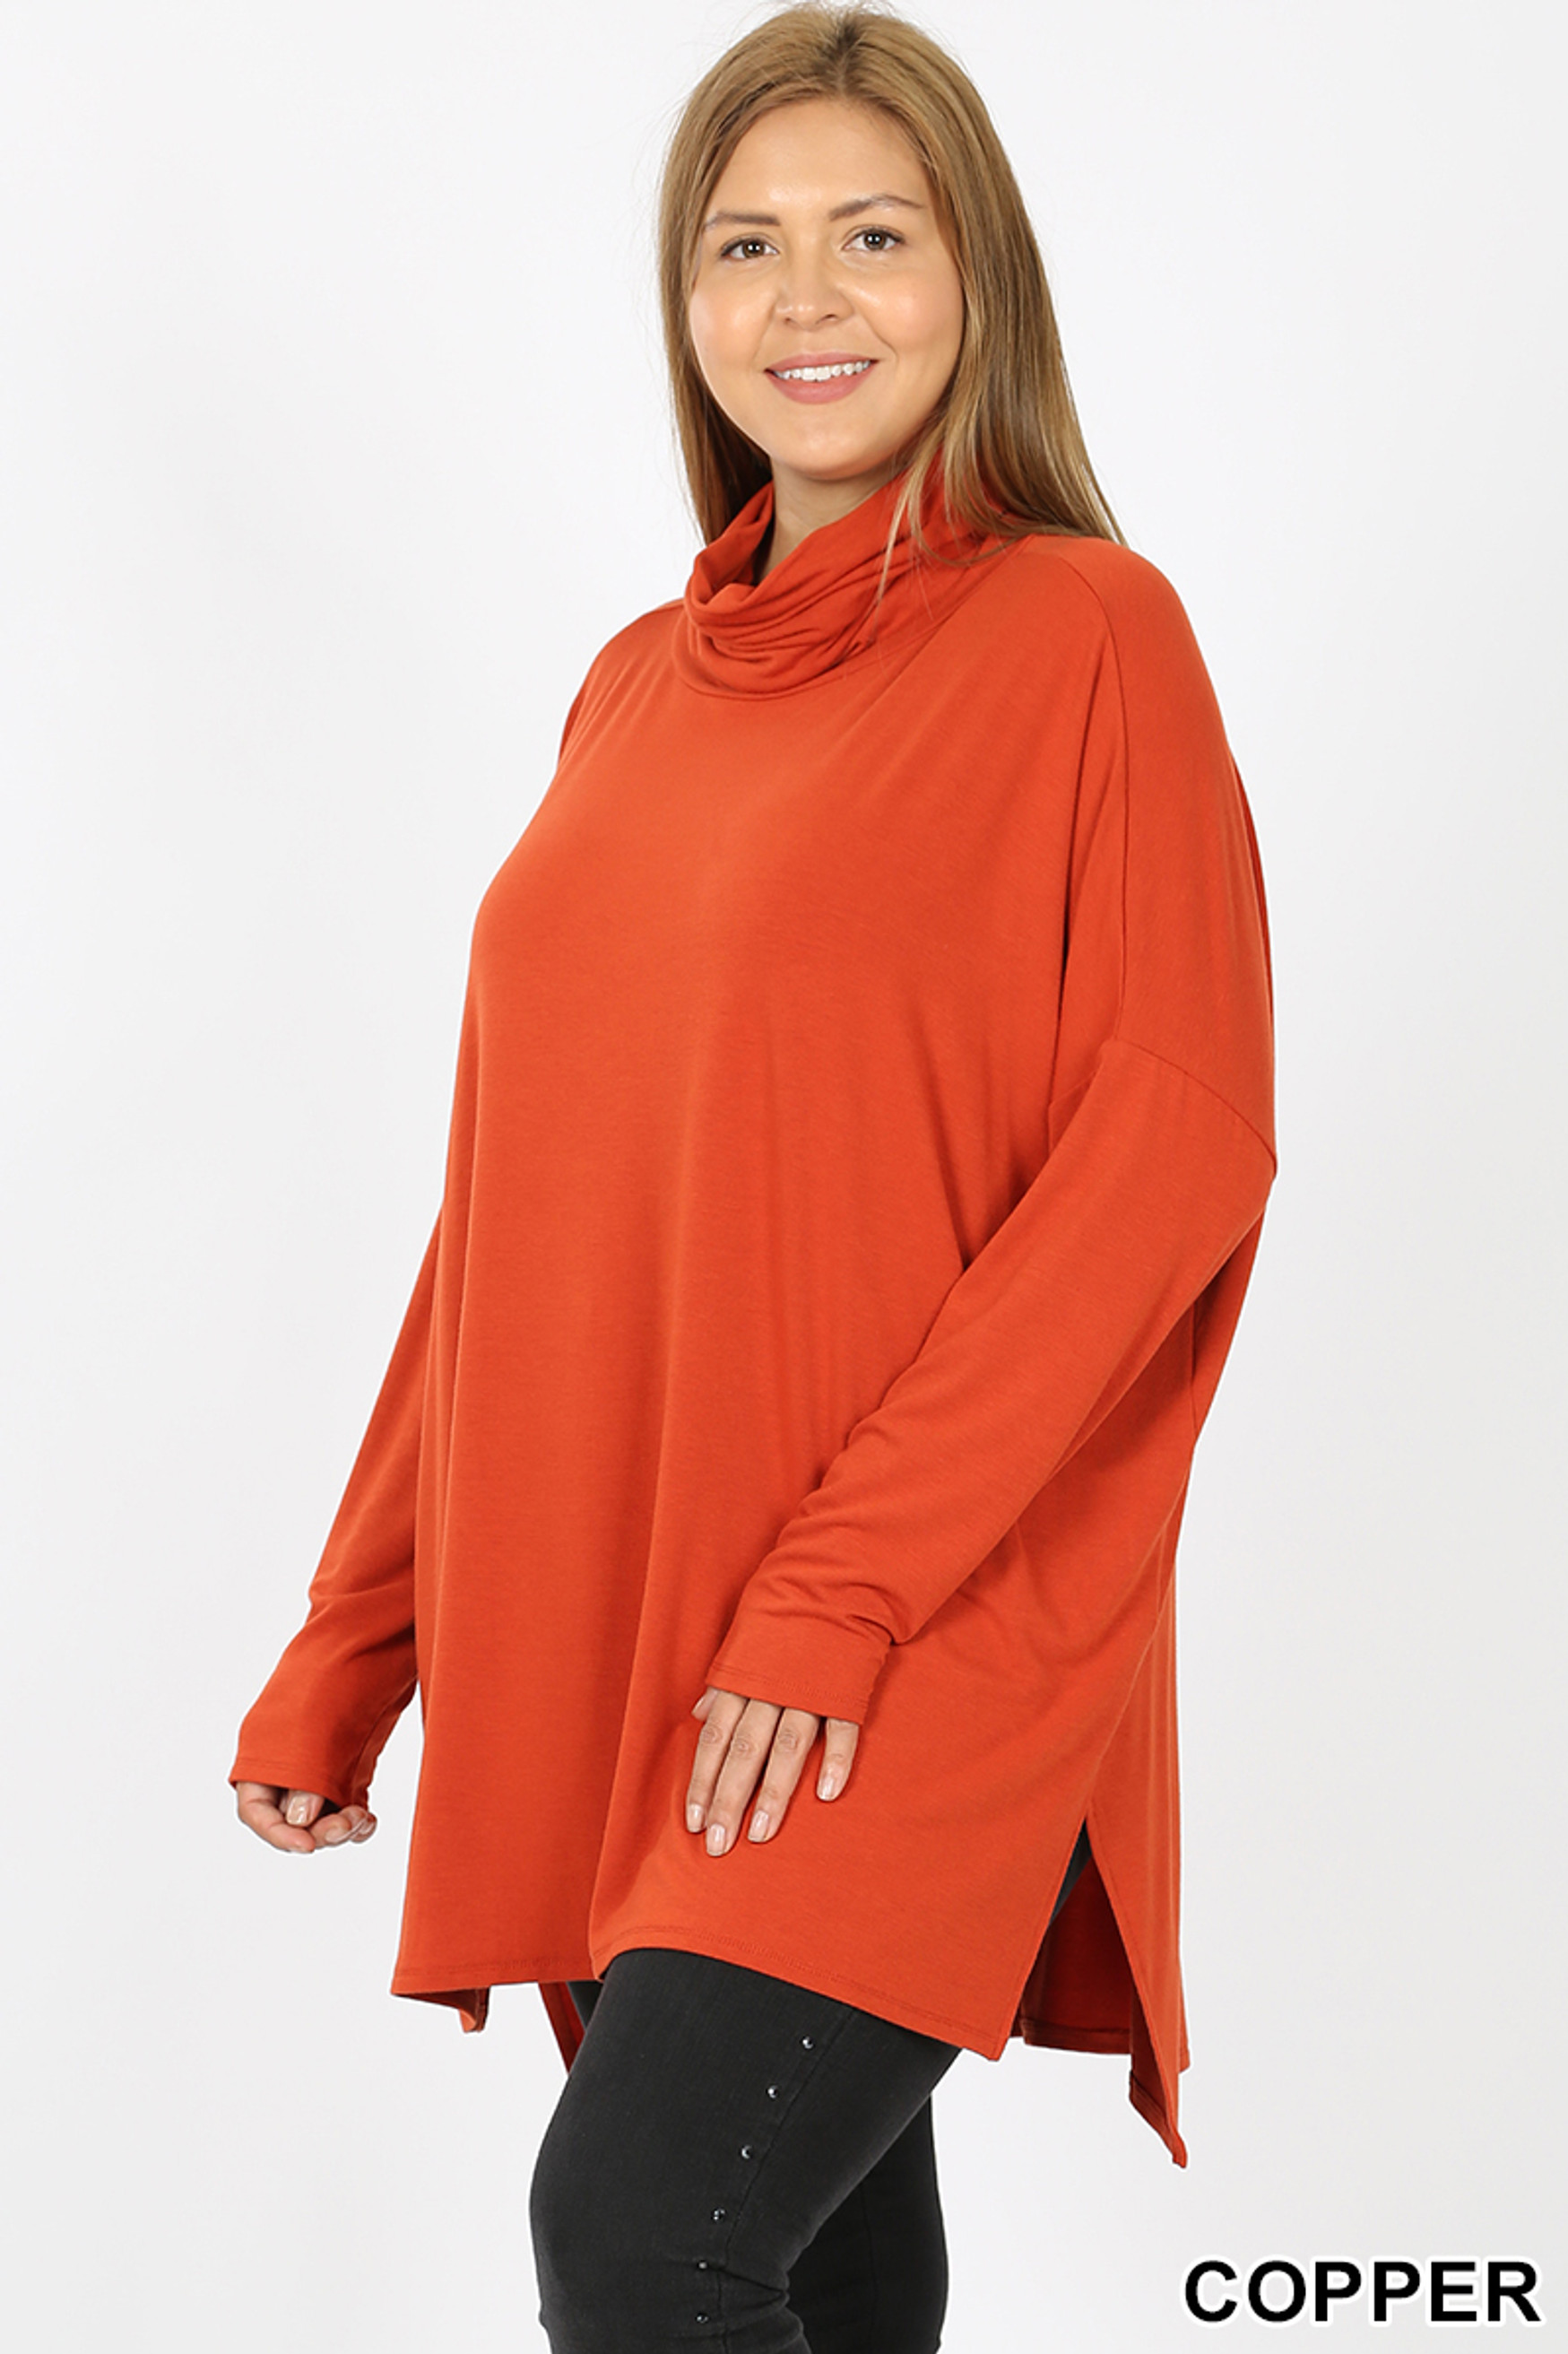 45 degree image of Copper Rayon Cowl Neck Dolman Sleeve Plus Size Top